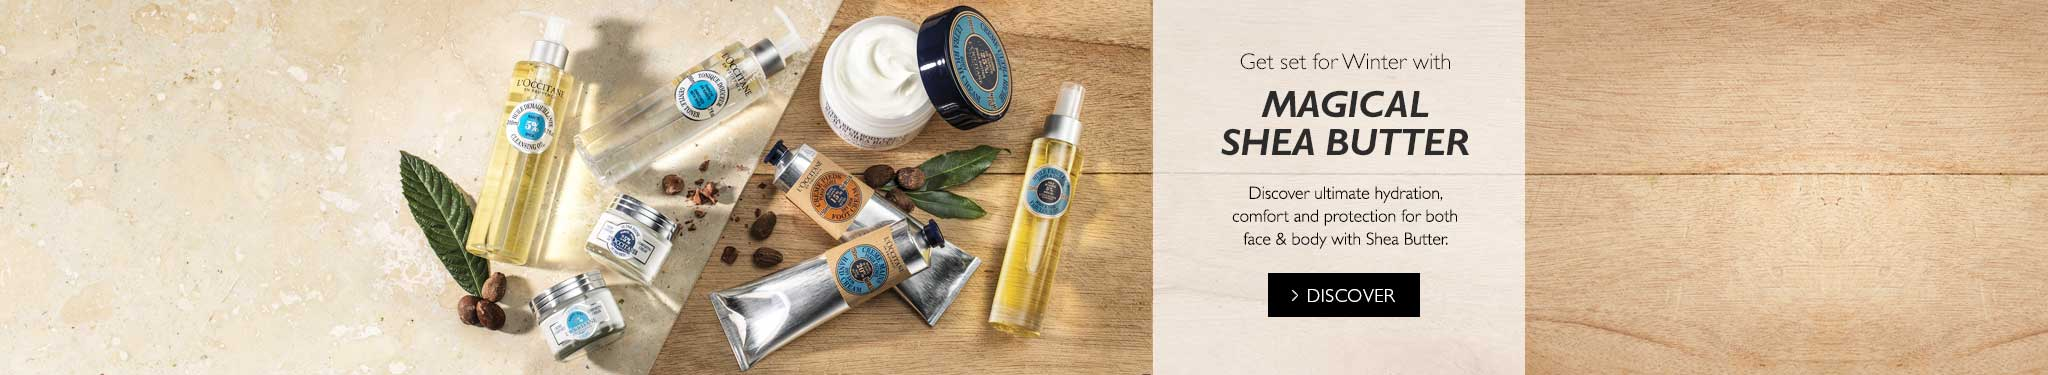 Get set for Winter with shea butter